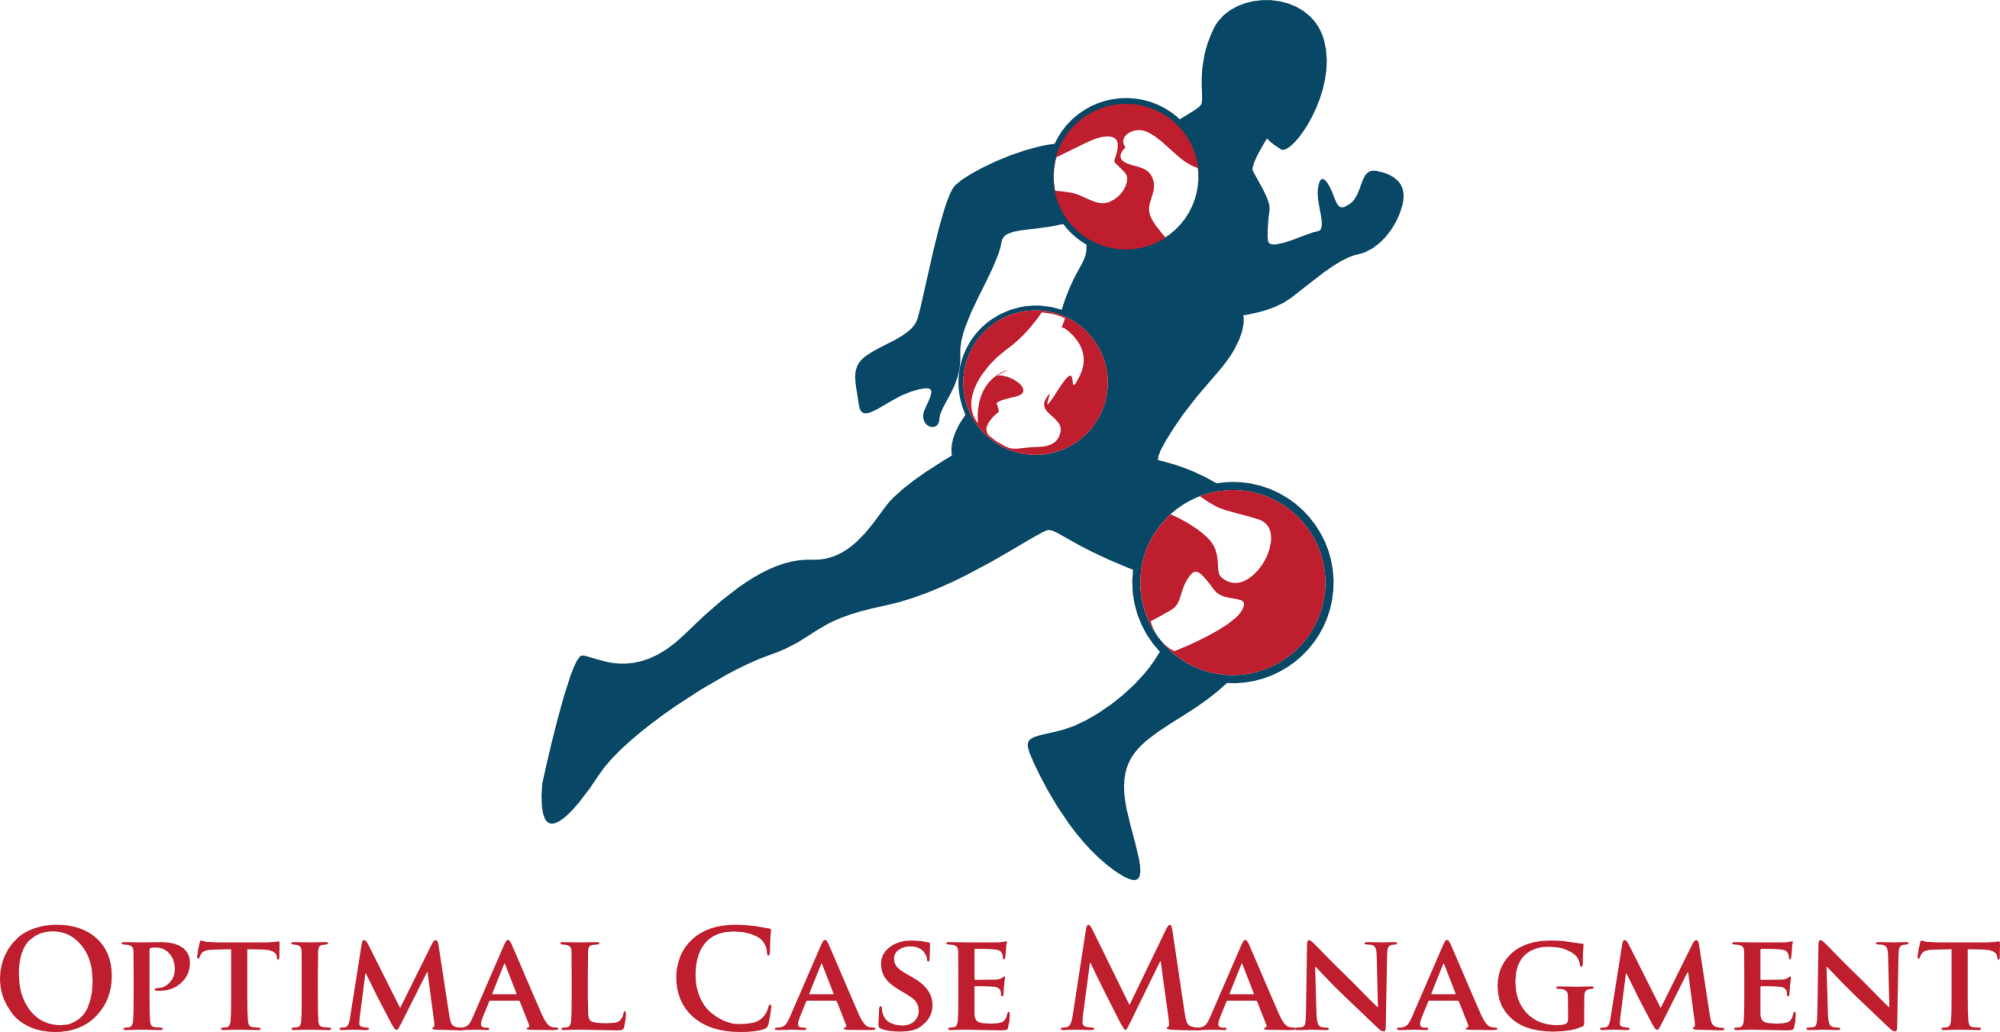 Manager clipart quality manager. Medical case management company